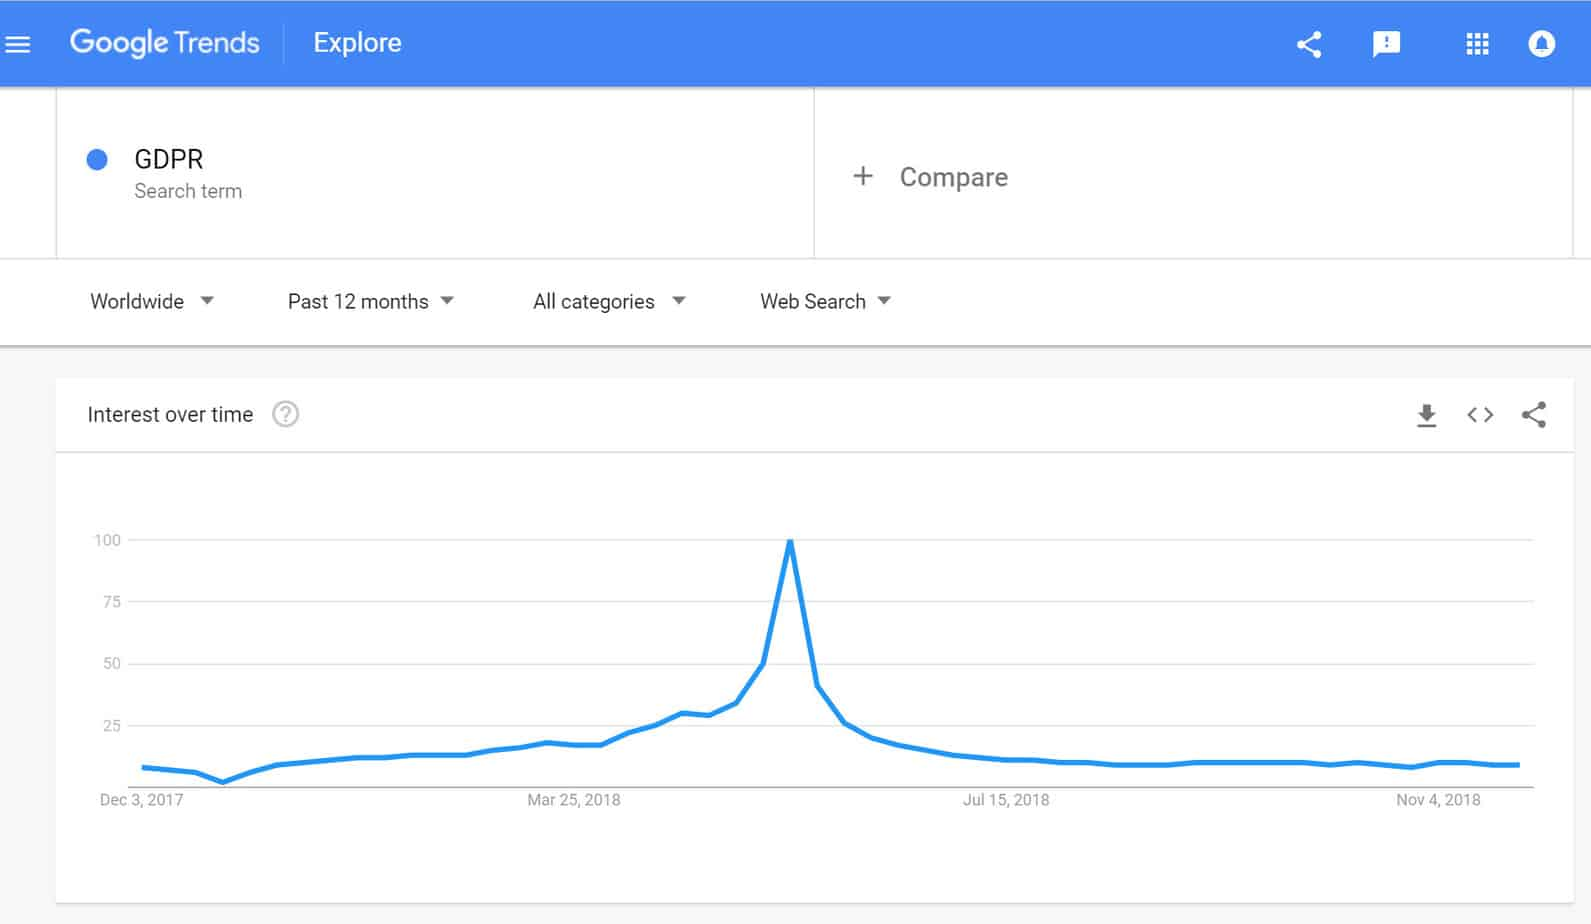 Google Trends data for the term 'GDPR'